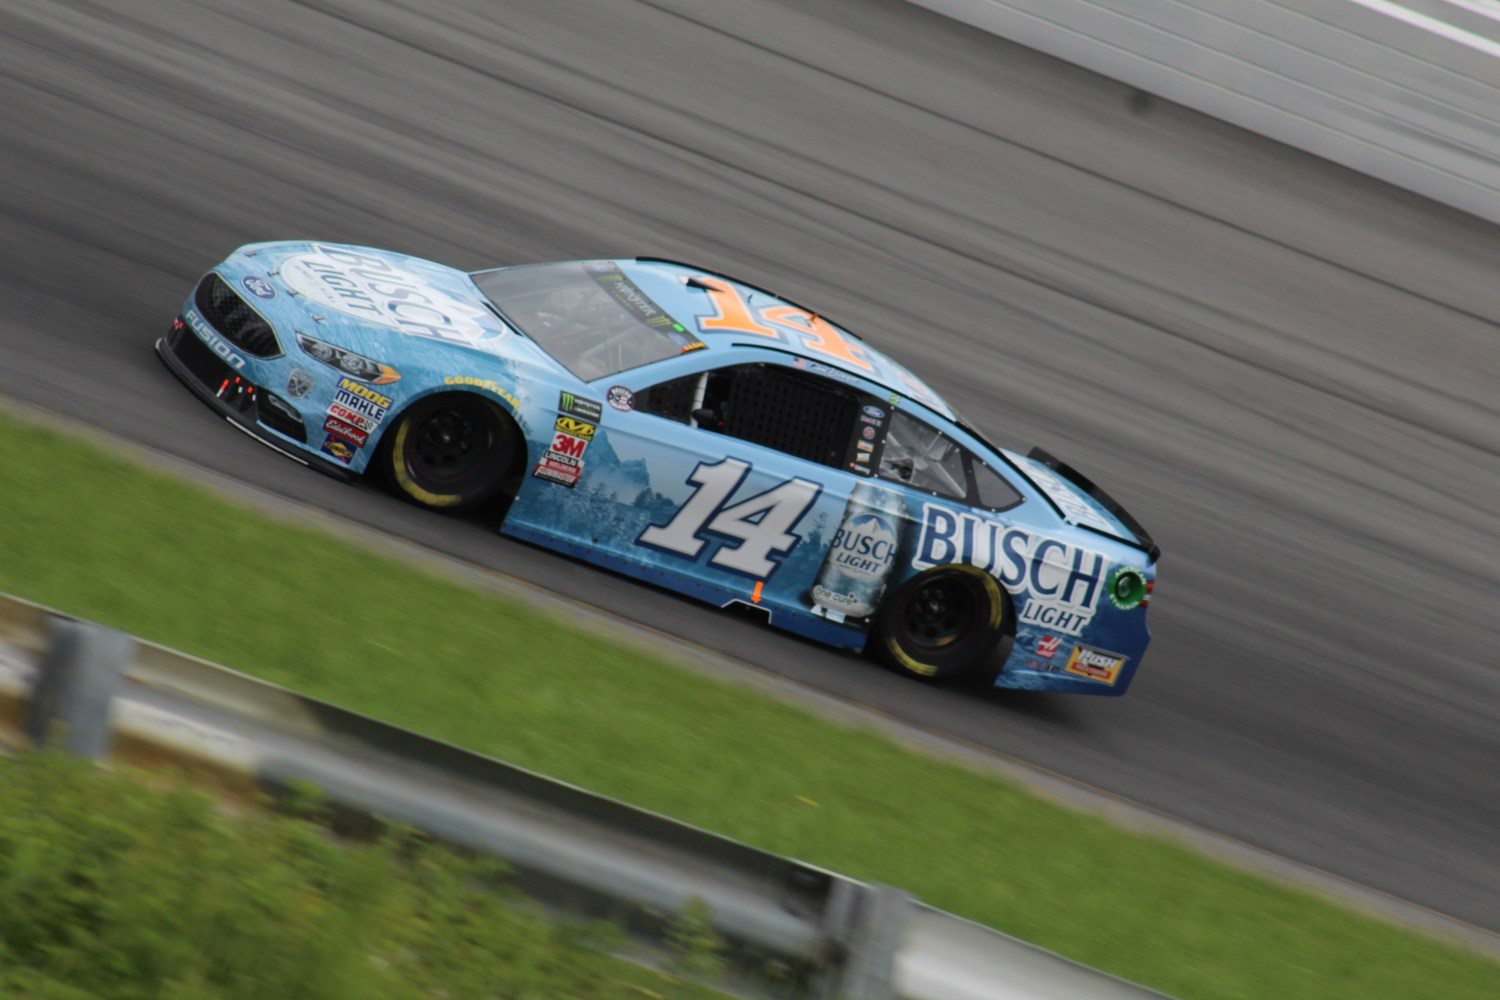 Clint Bowyer races during the 2018 Pocono 400. (Tyler Head | The Racing Experts)